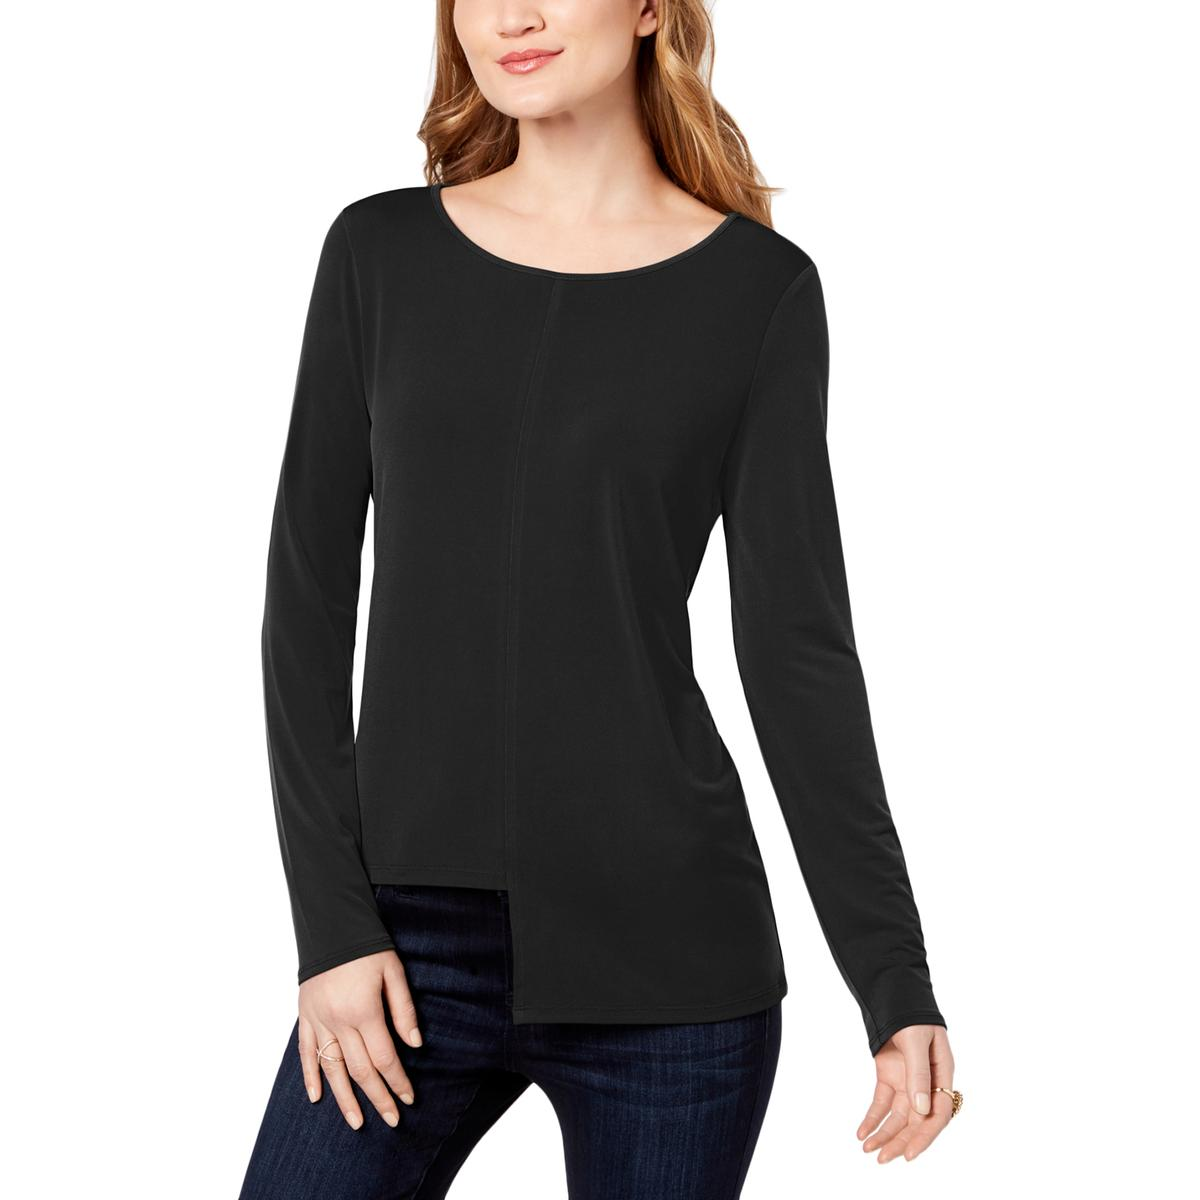 6cc44277825 Details about INC Womens Black Asymmetrical Long Sleeve Wide Neck Fitted Top  Shirt L BHFO 1054